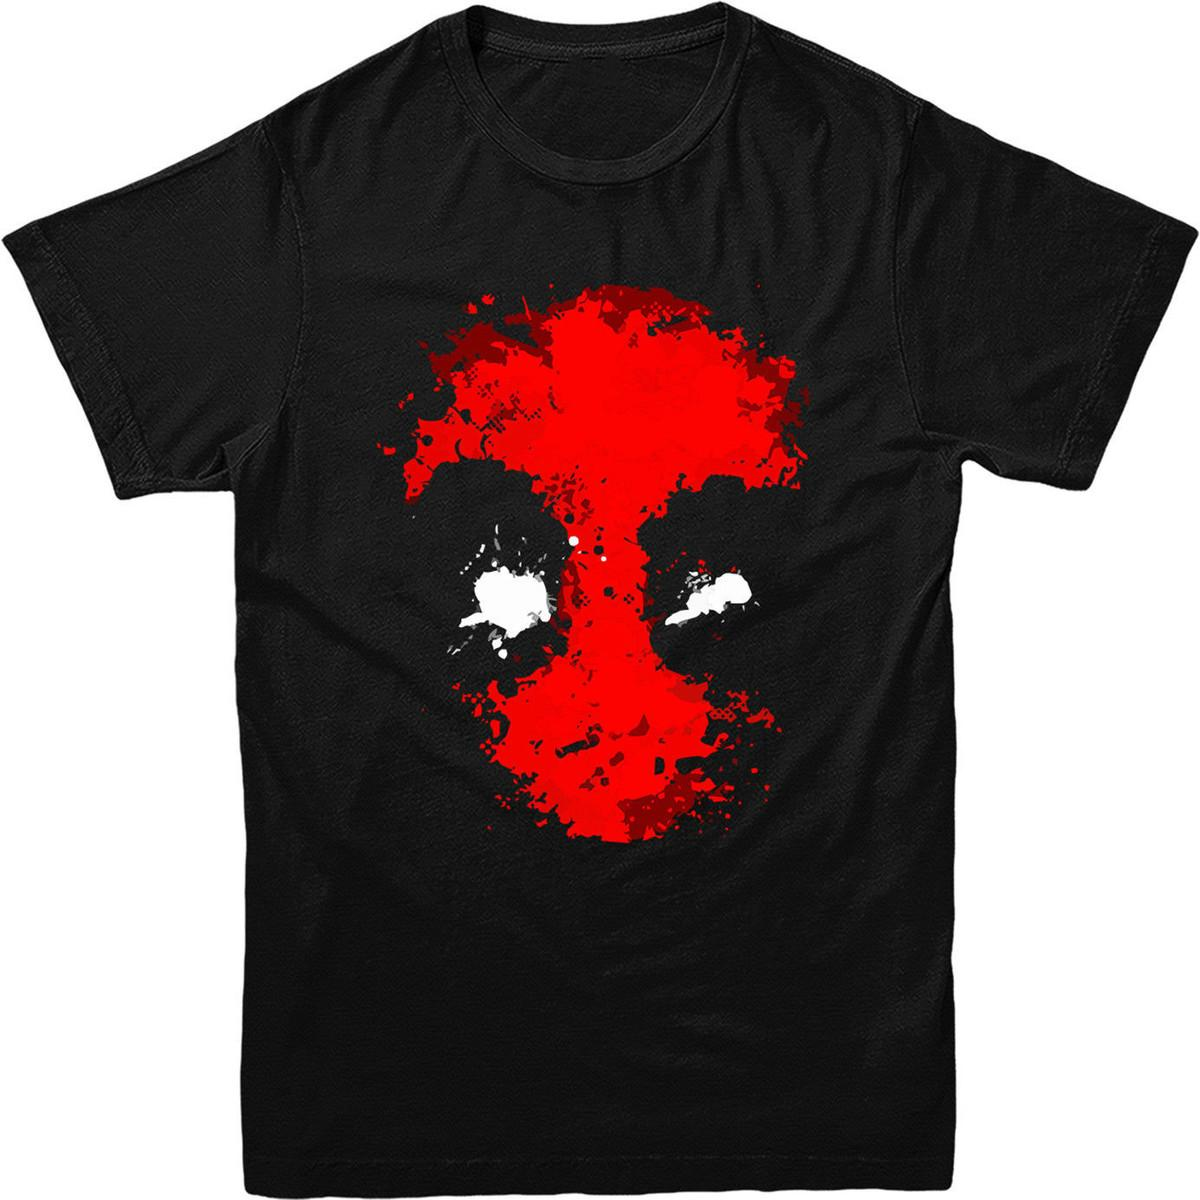 Deadpool FACE T-shirt, Marvel Comics T-shirt. Inspired Superhero T-shirt Tee Shirt Unisex More Size And Colors Youth